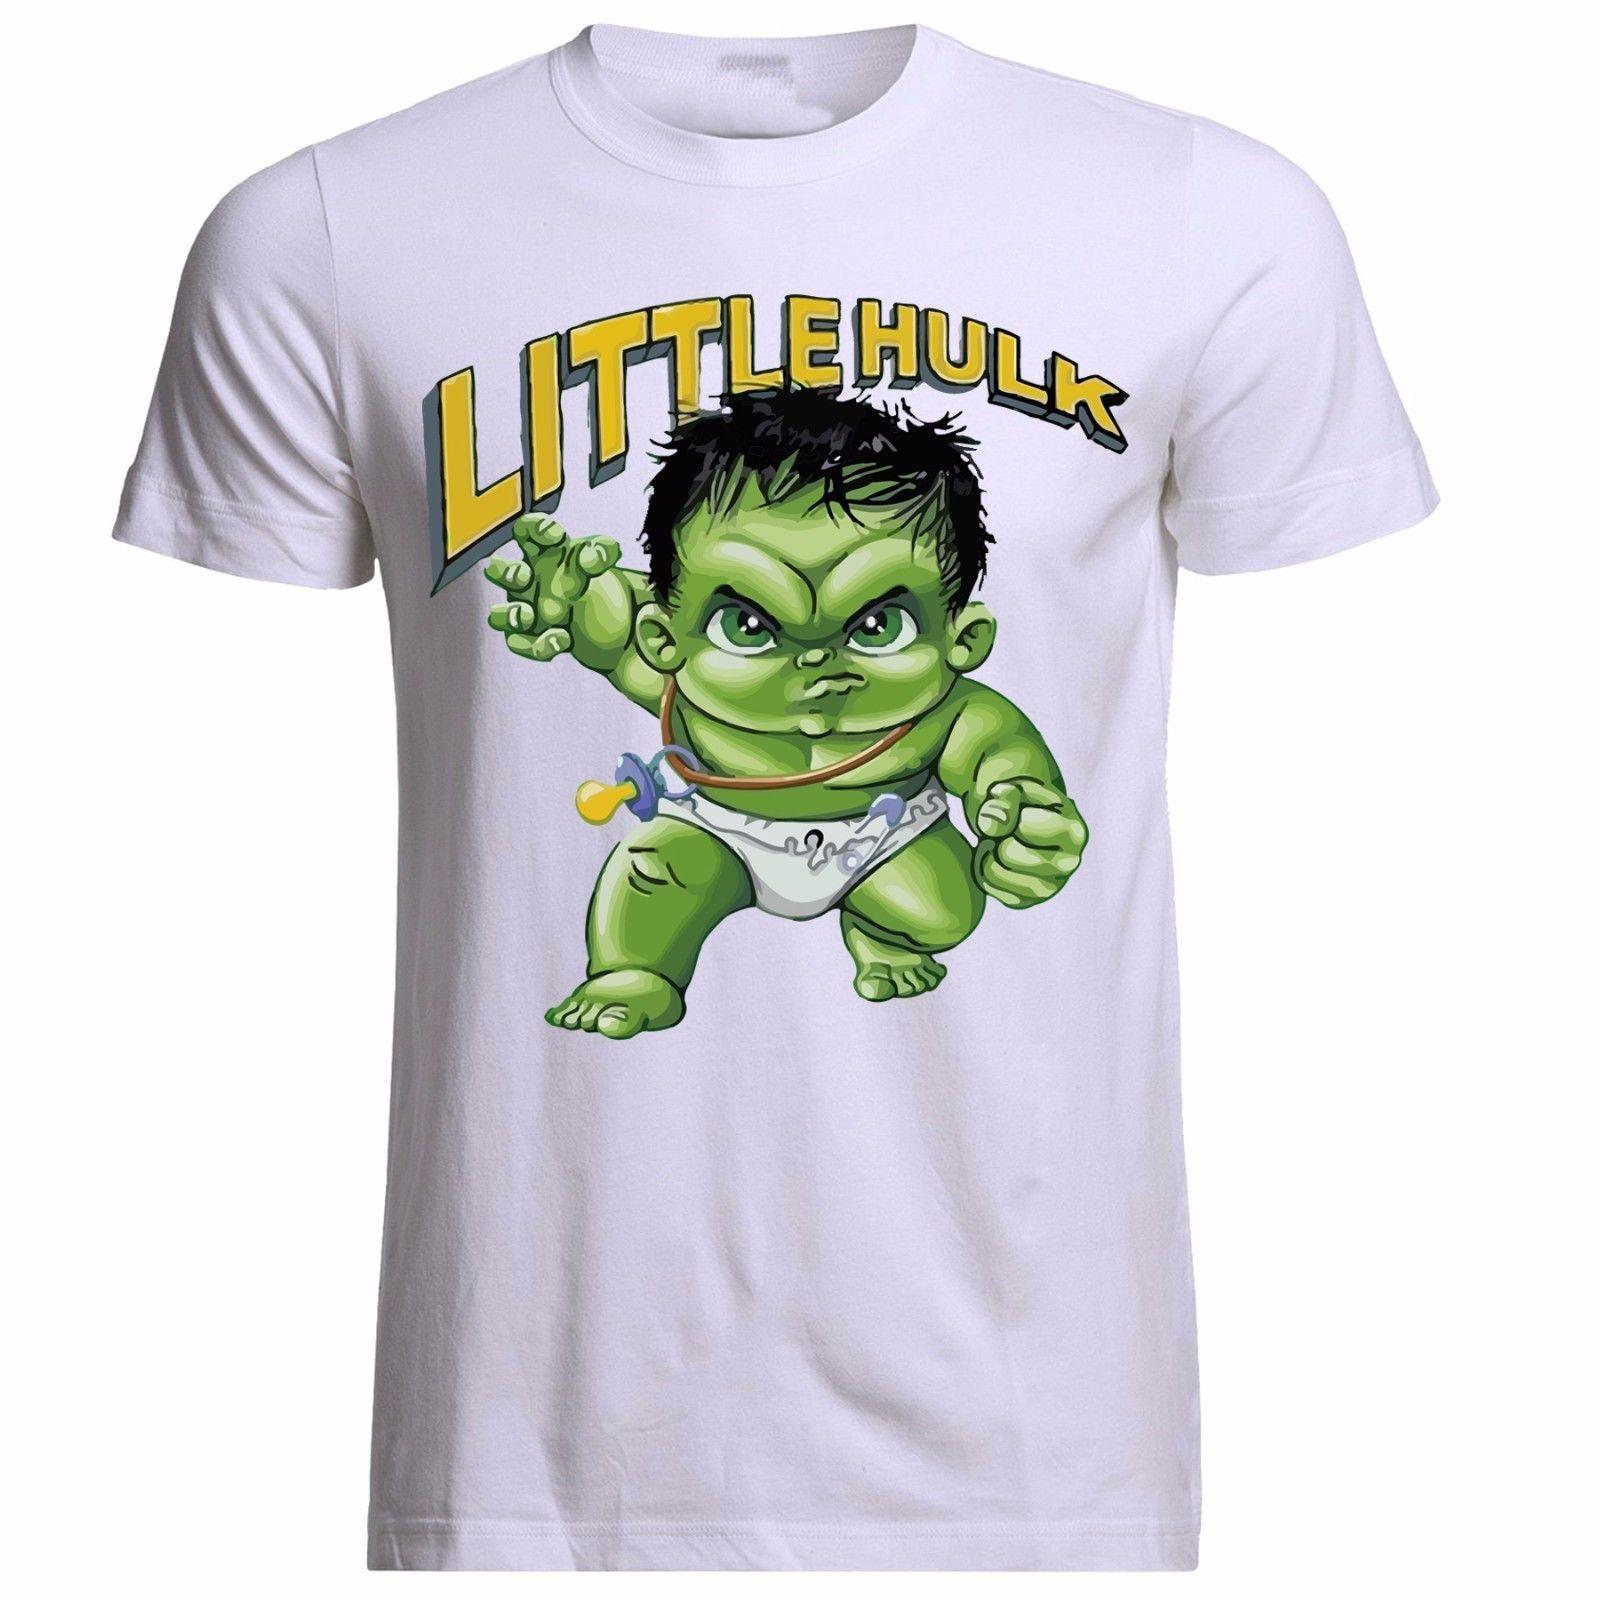 3b9653a8 LITTLE HULK CHILDRENS TOP MARVEL SUPERHERO AVENGERS UNISEX PH159 T SHIRT  Clever Tee Shirts Now T Shirts From Teestotal, $11.01| DHgate.Com